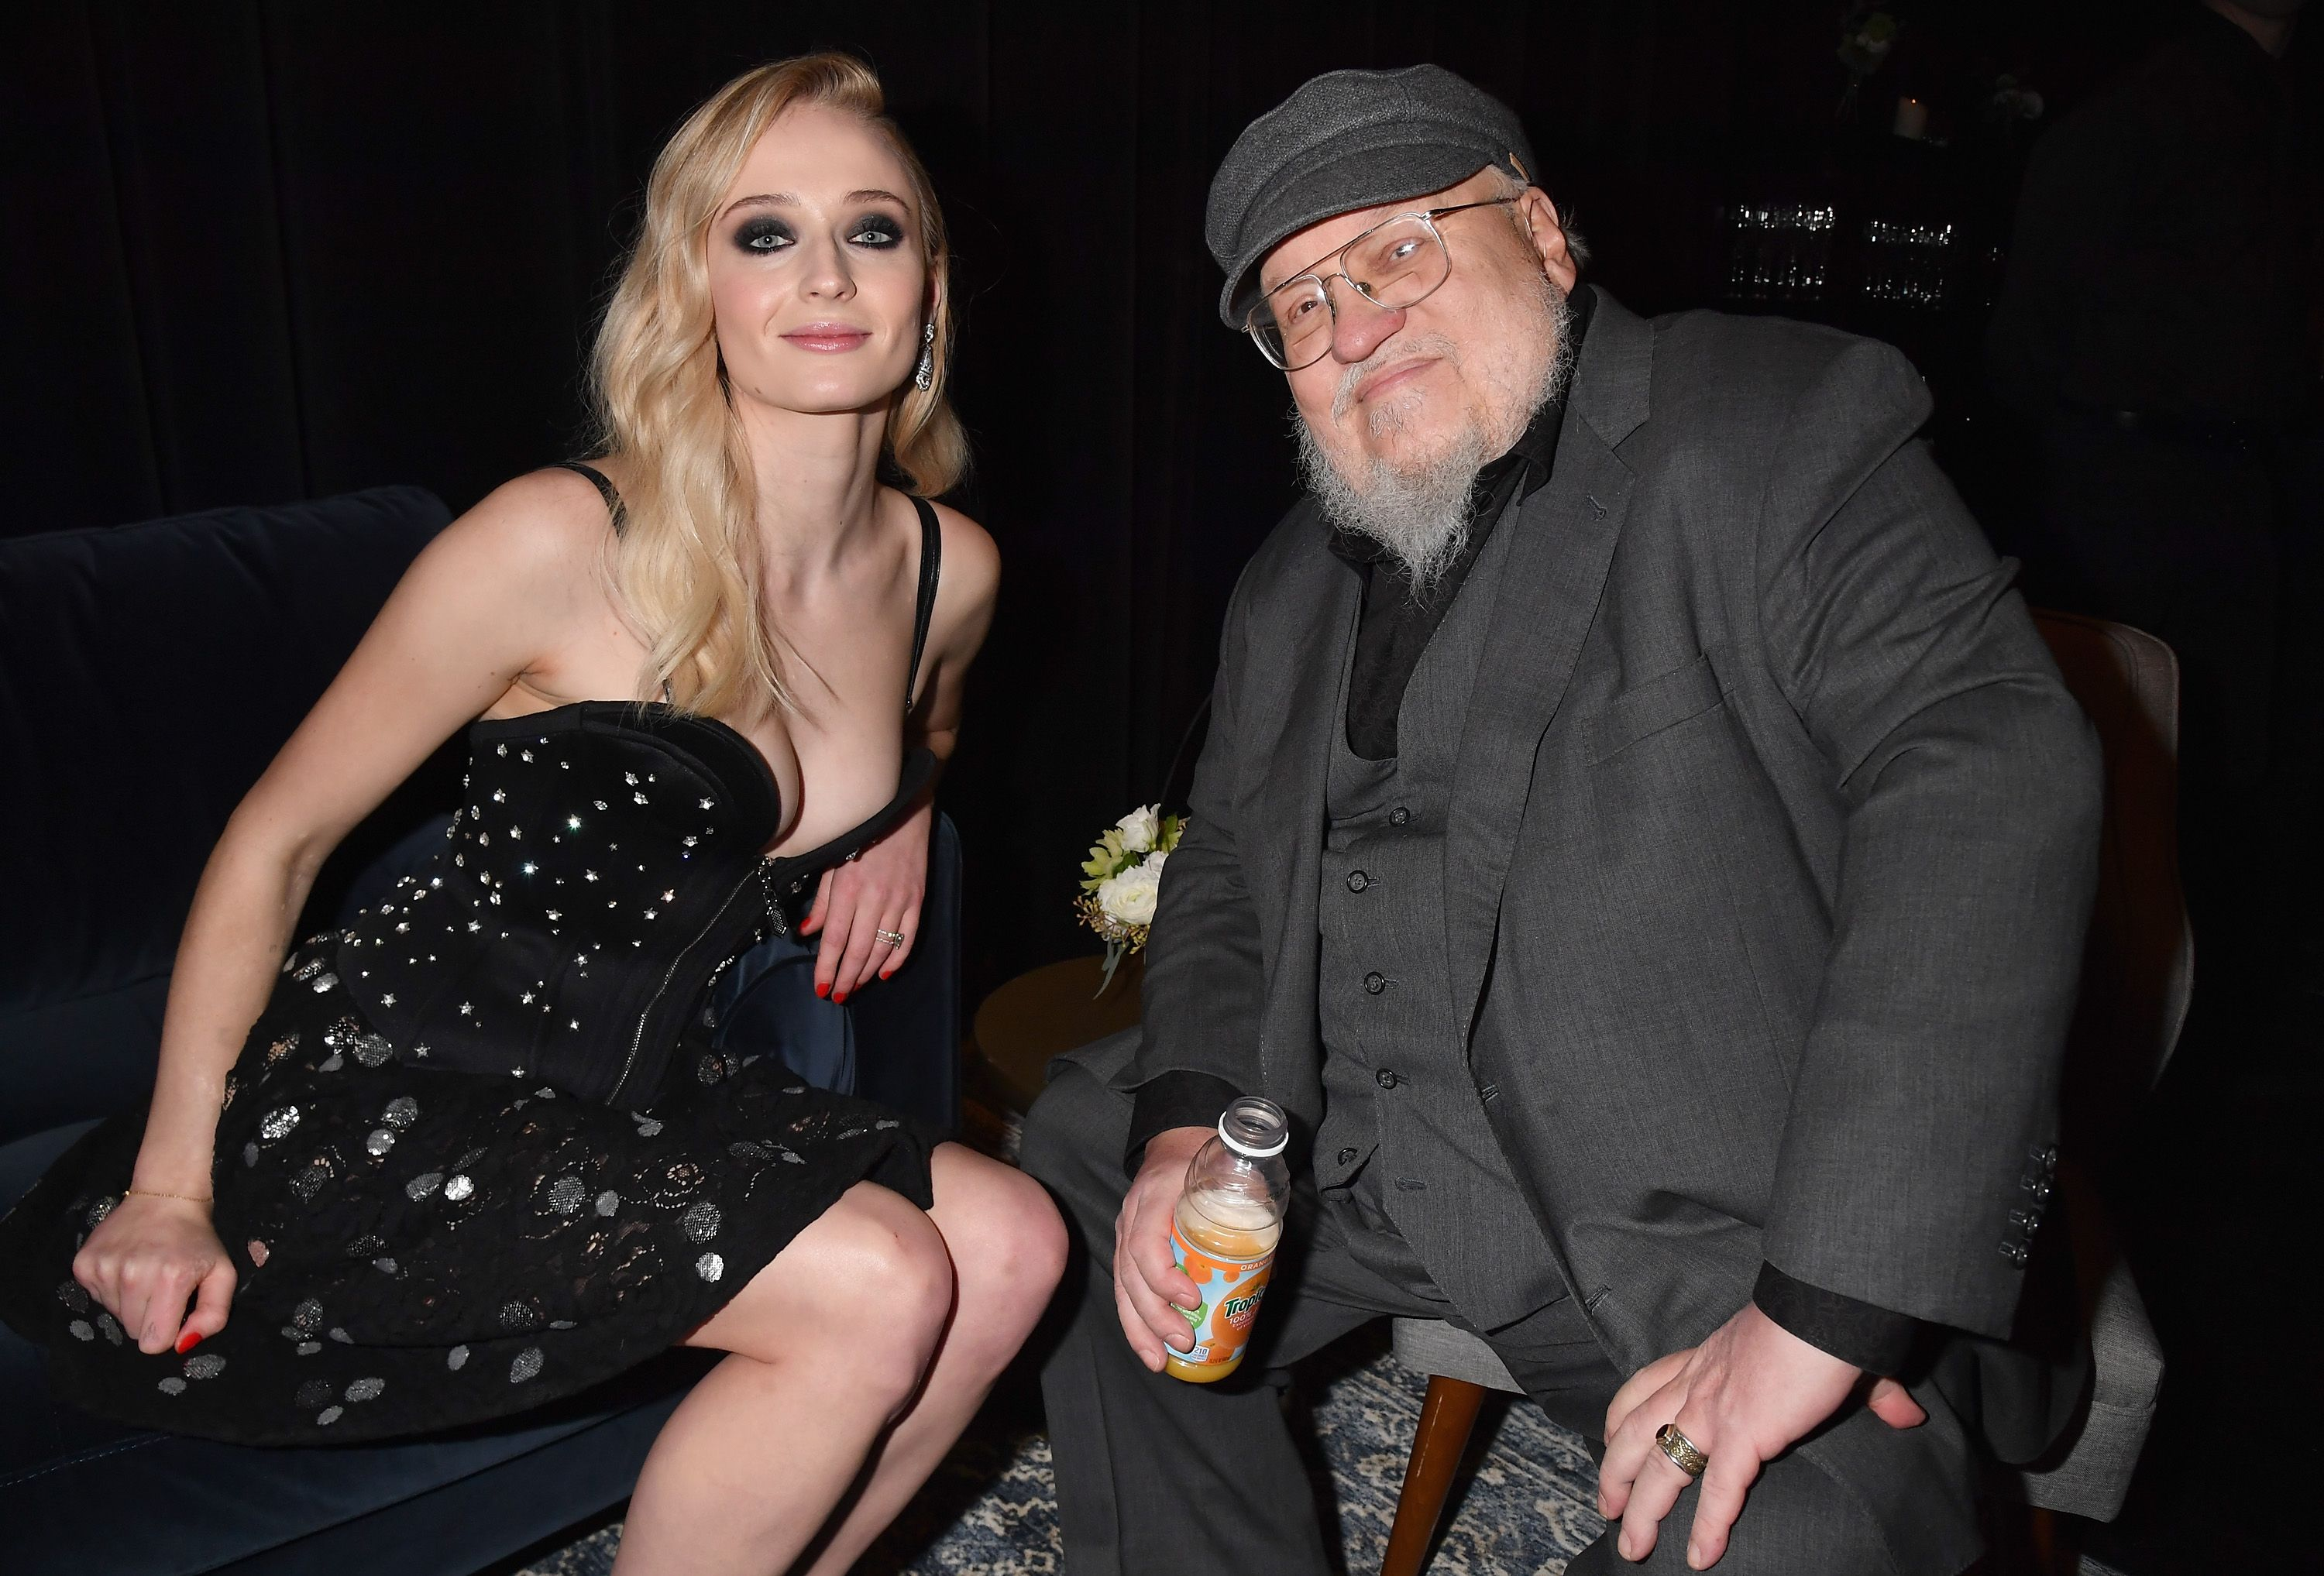 George R.R. Martin Teases the *Real* Ending of 'Game of Thrones' in Books